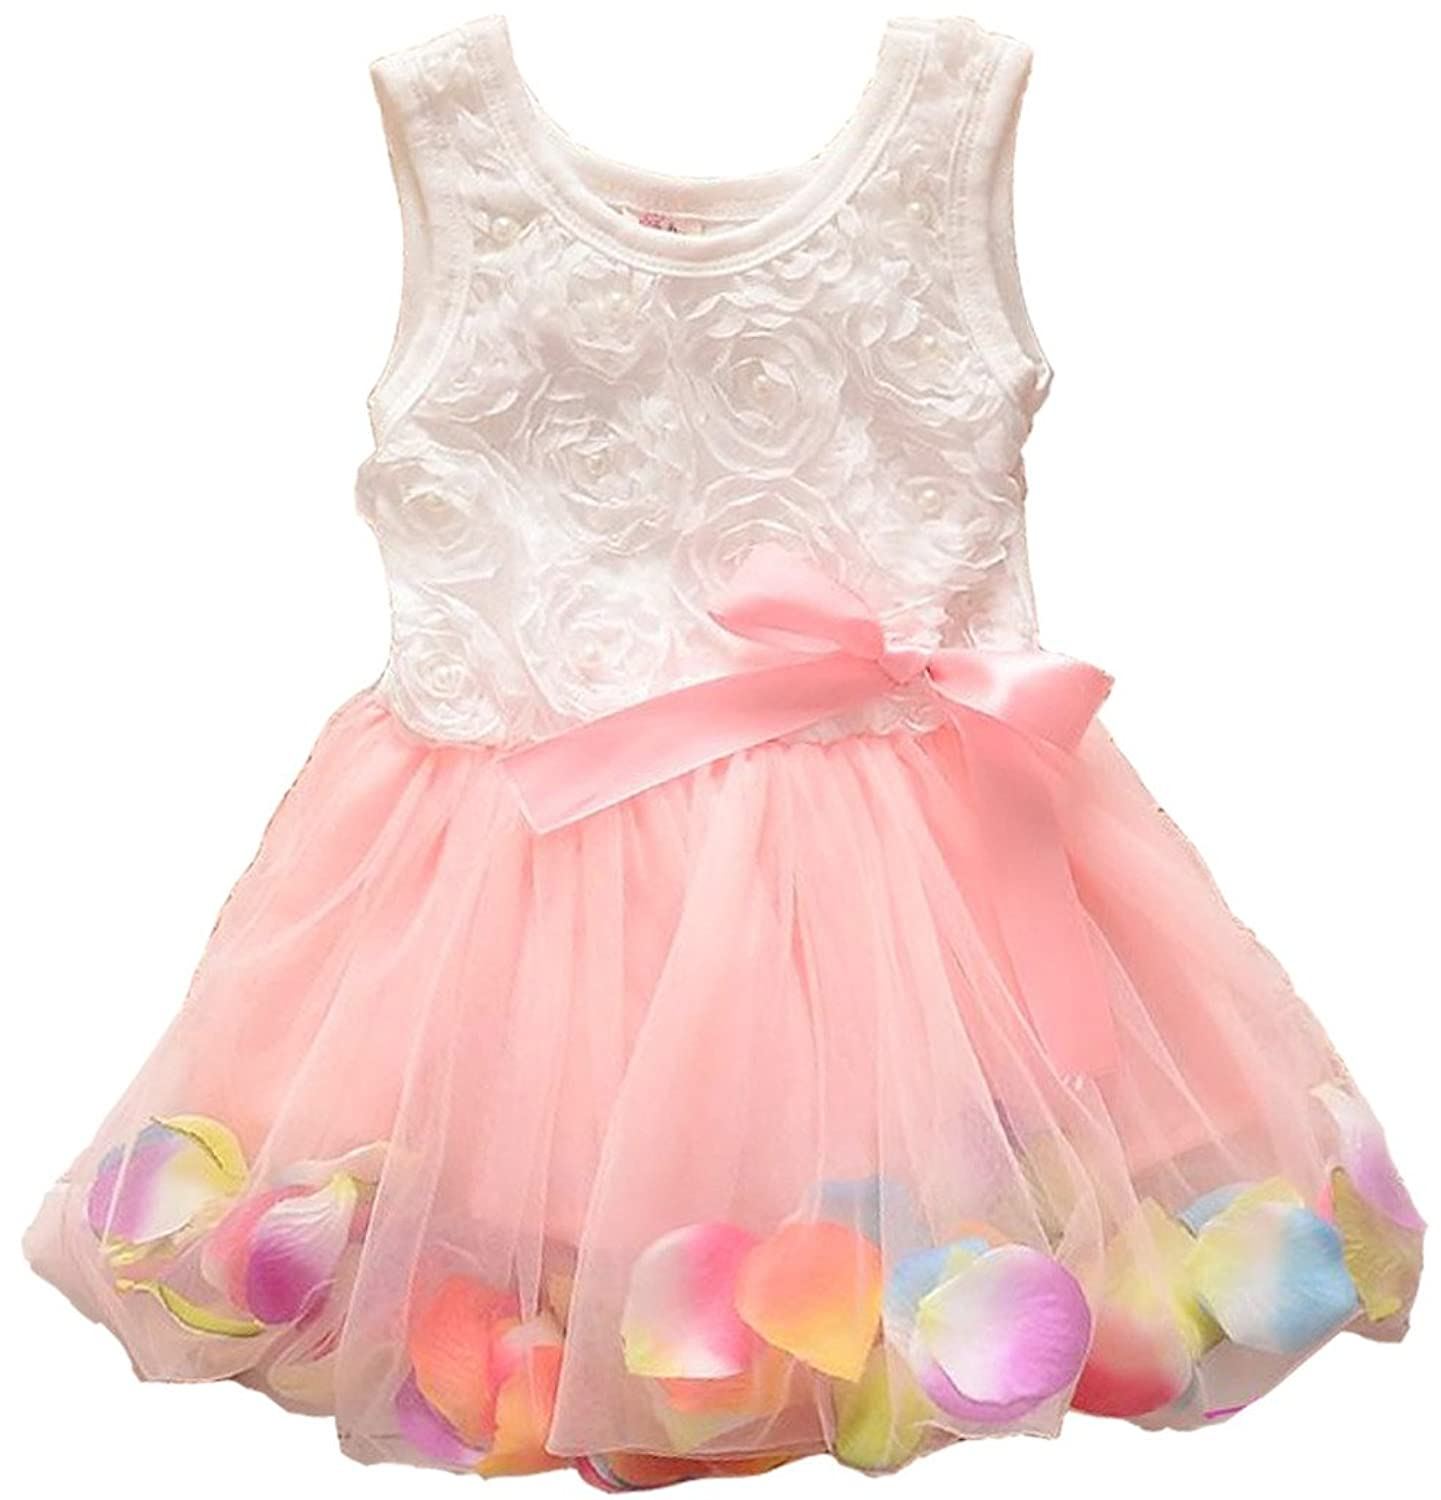 Baby Girls princess One Piece Snowflake Dress Lace Party Ballet Skirts